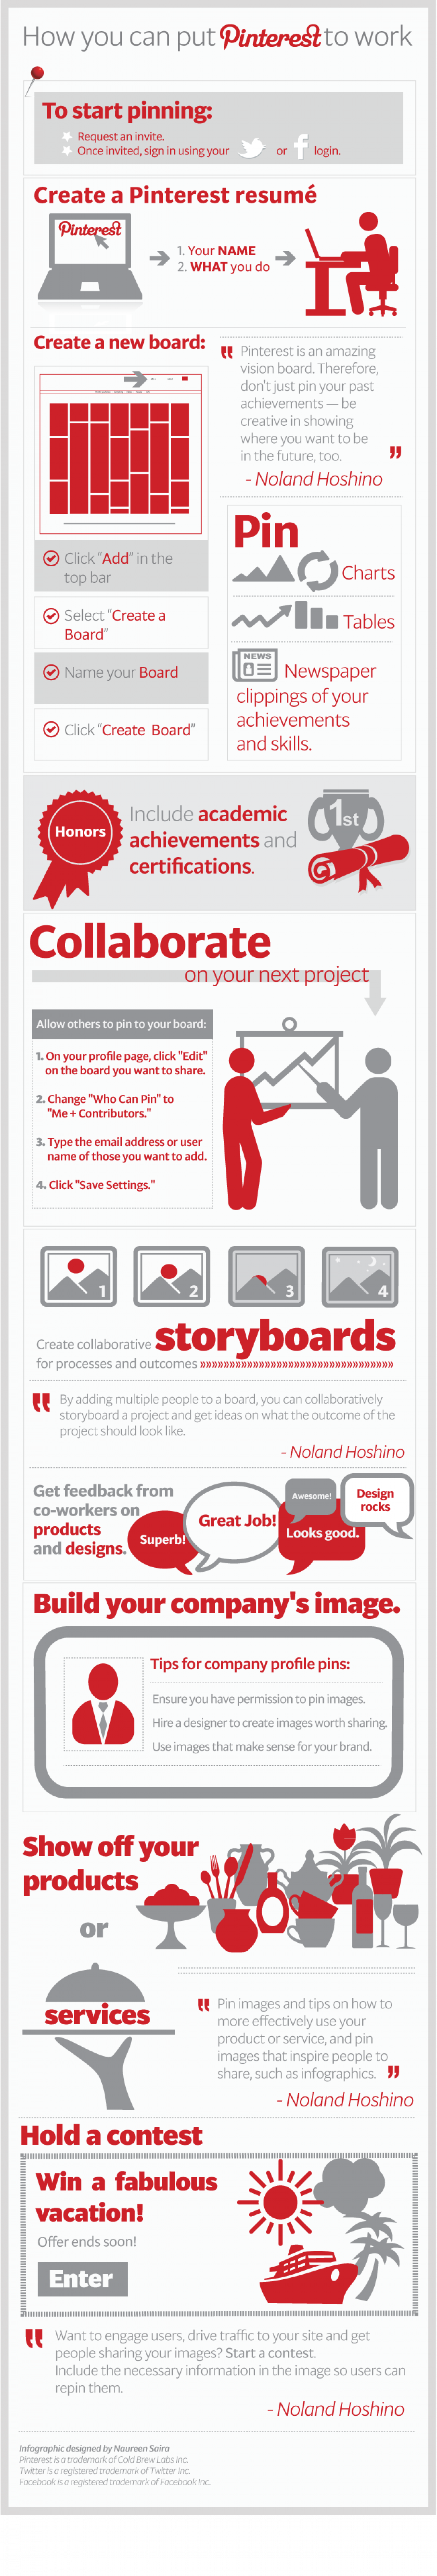 How to put Pinterest to work Infographic